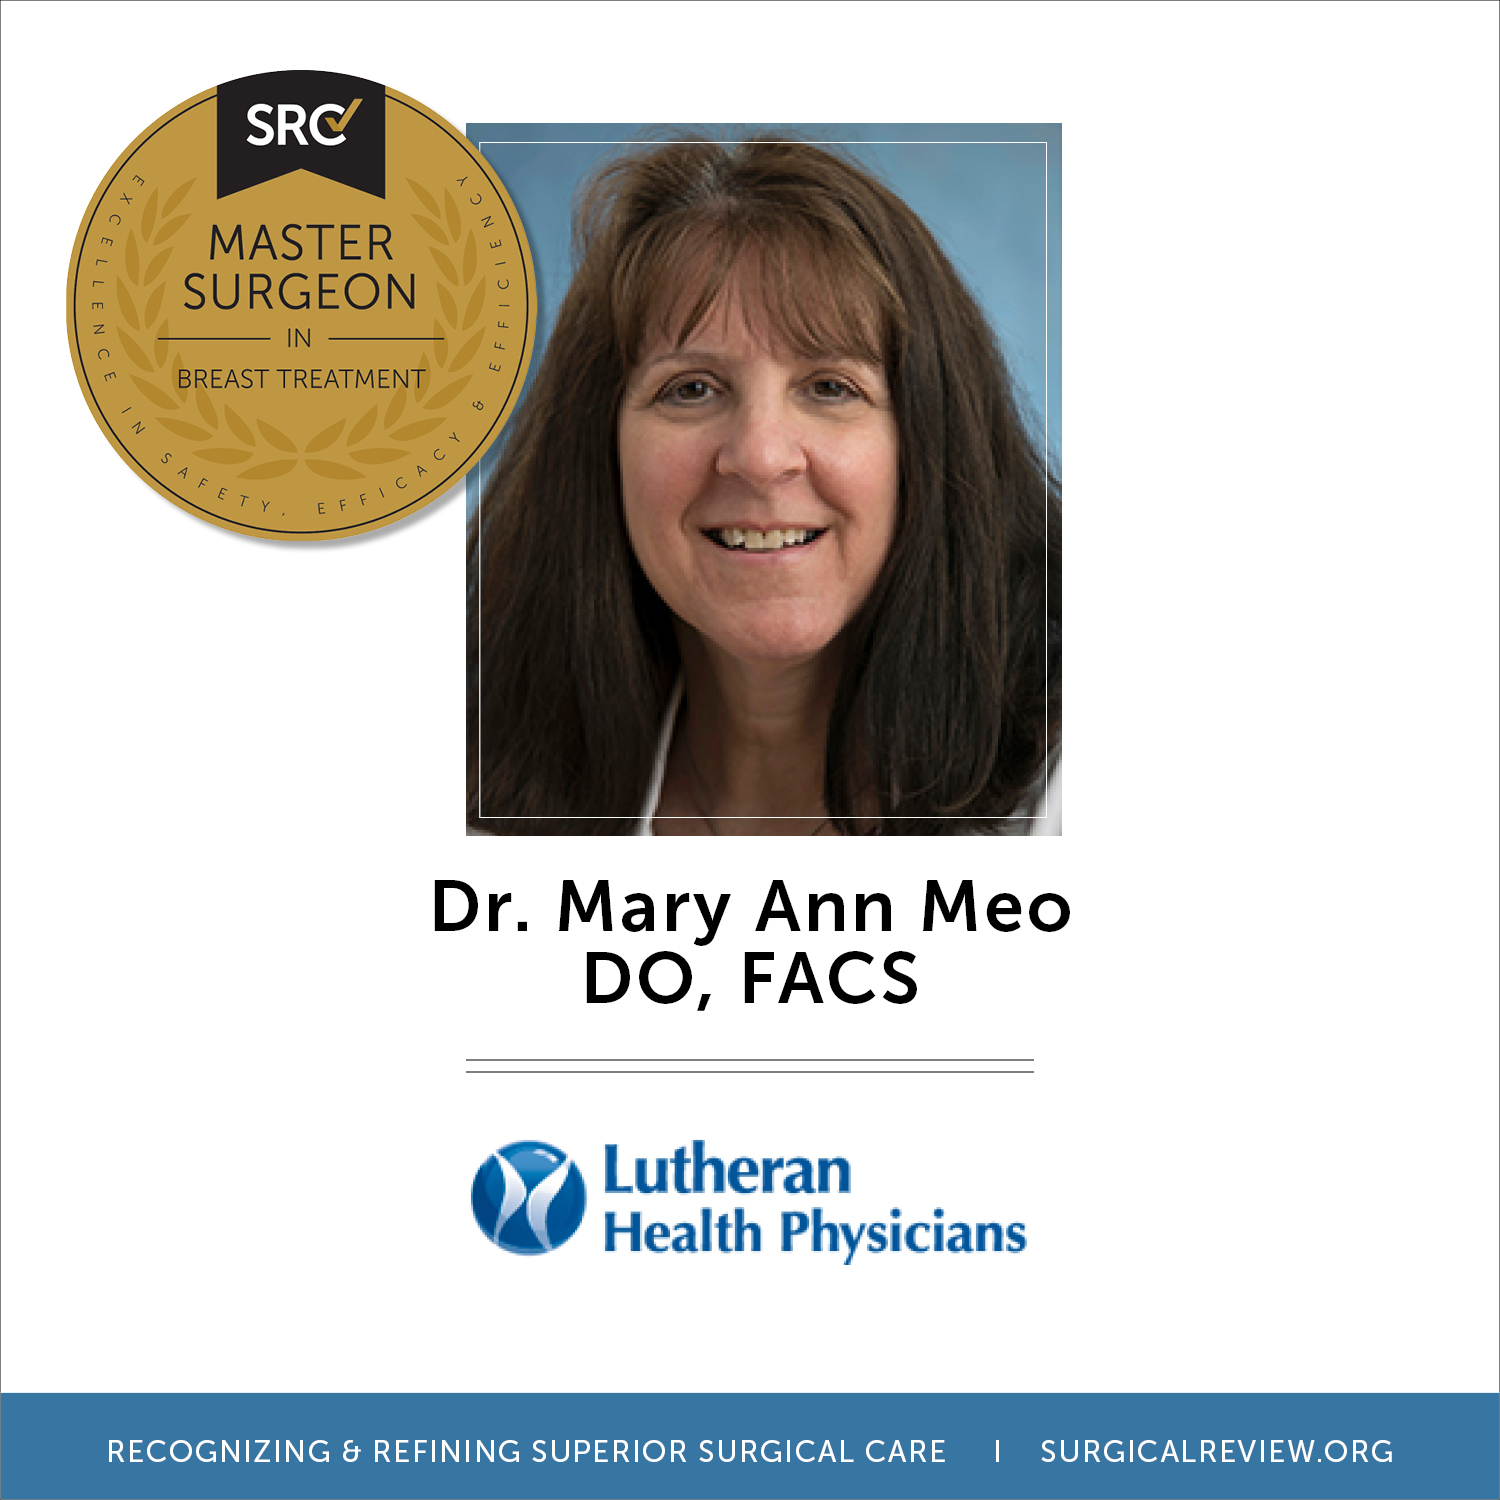 DR. MARY ANN MEO